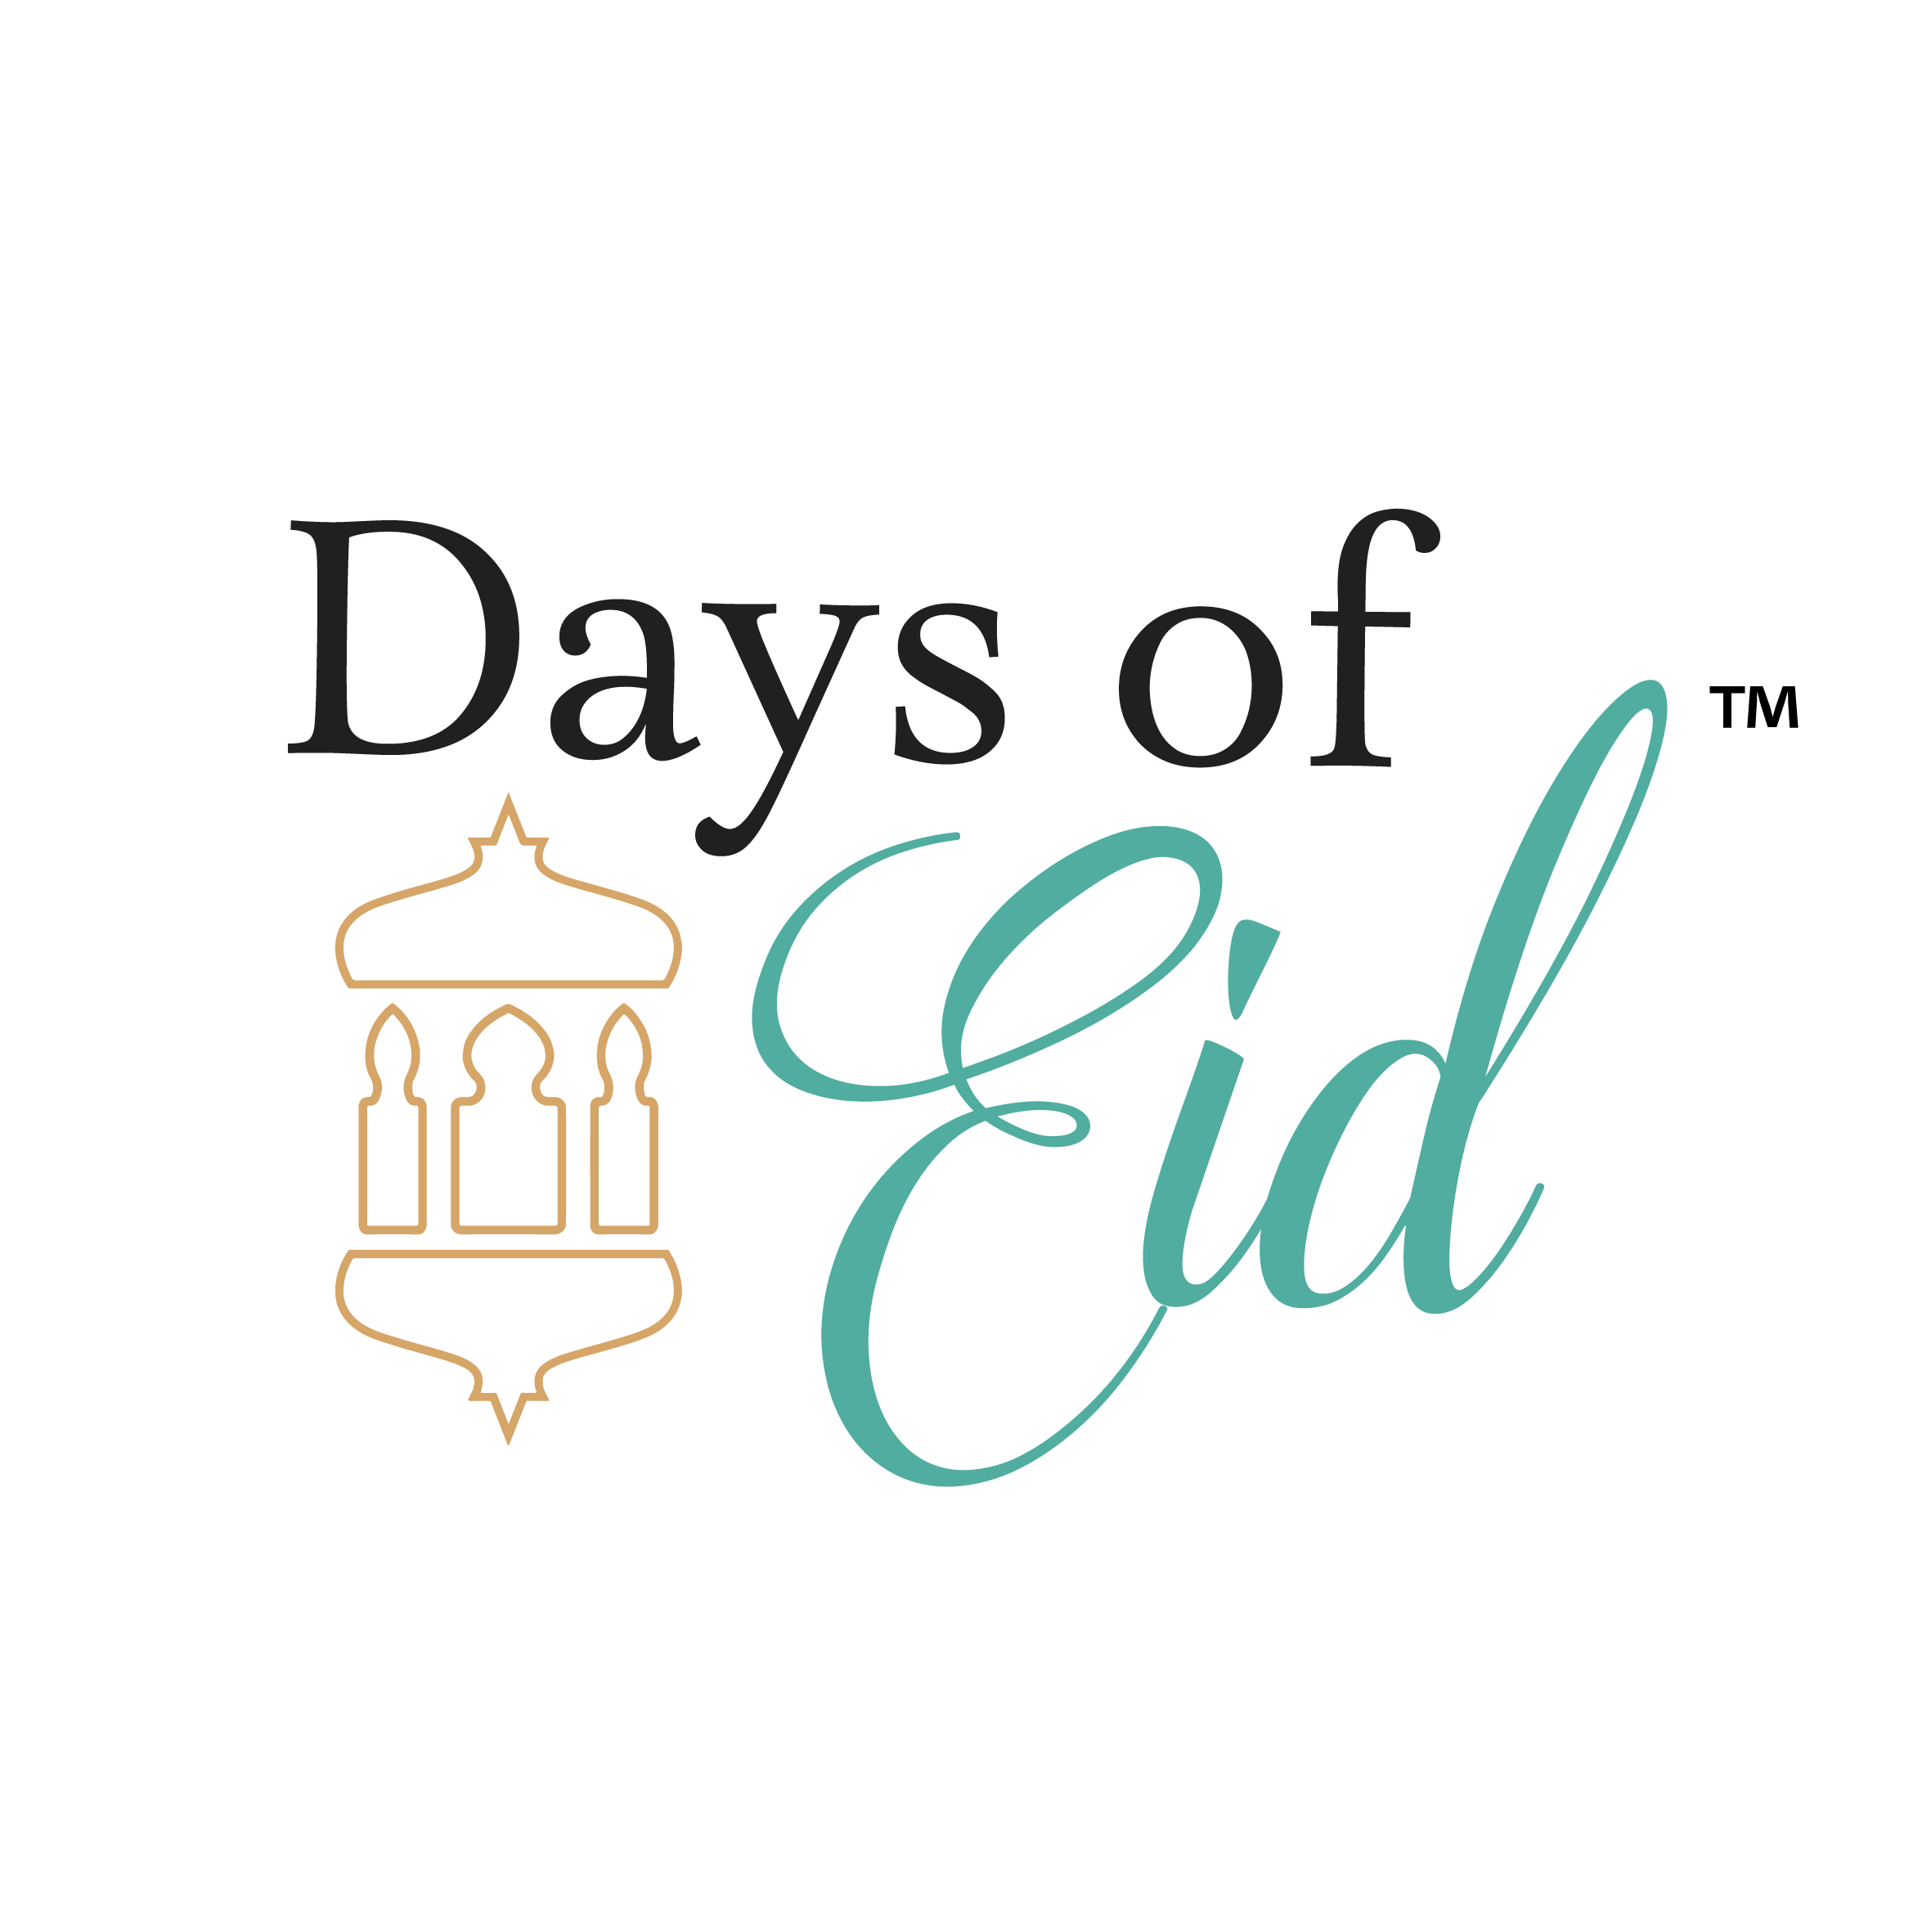 DAYS-OF-EID-LOGO-TRADEMARK-04.png